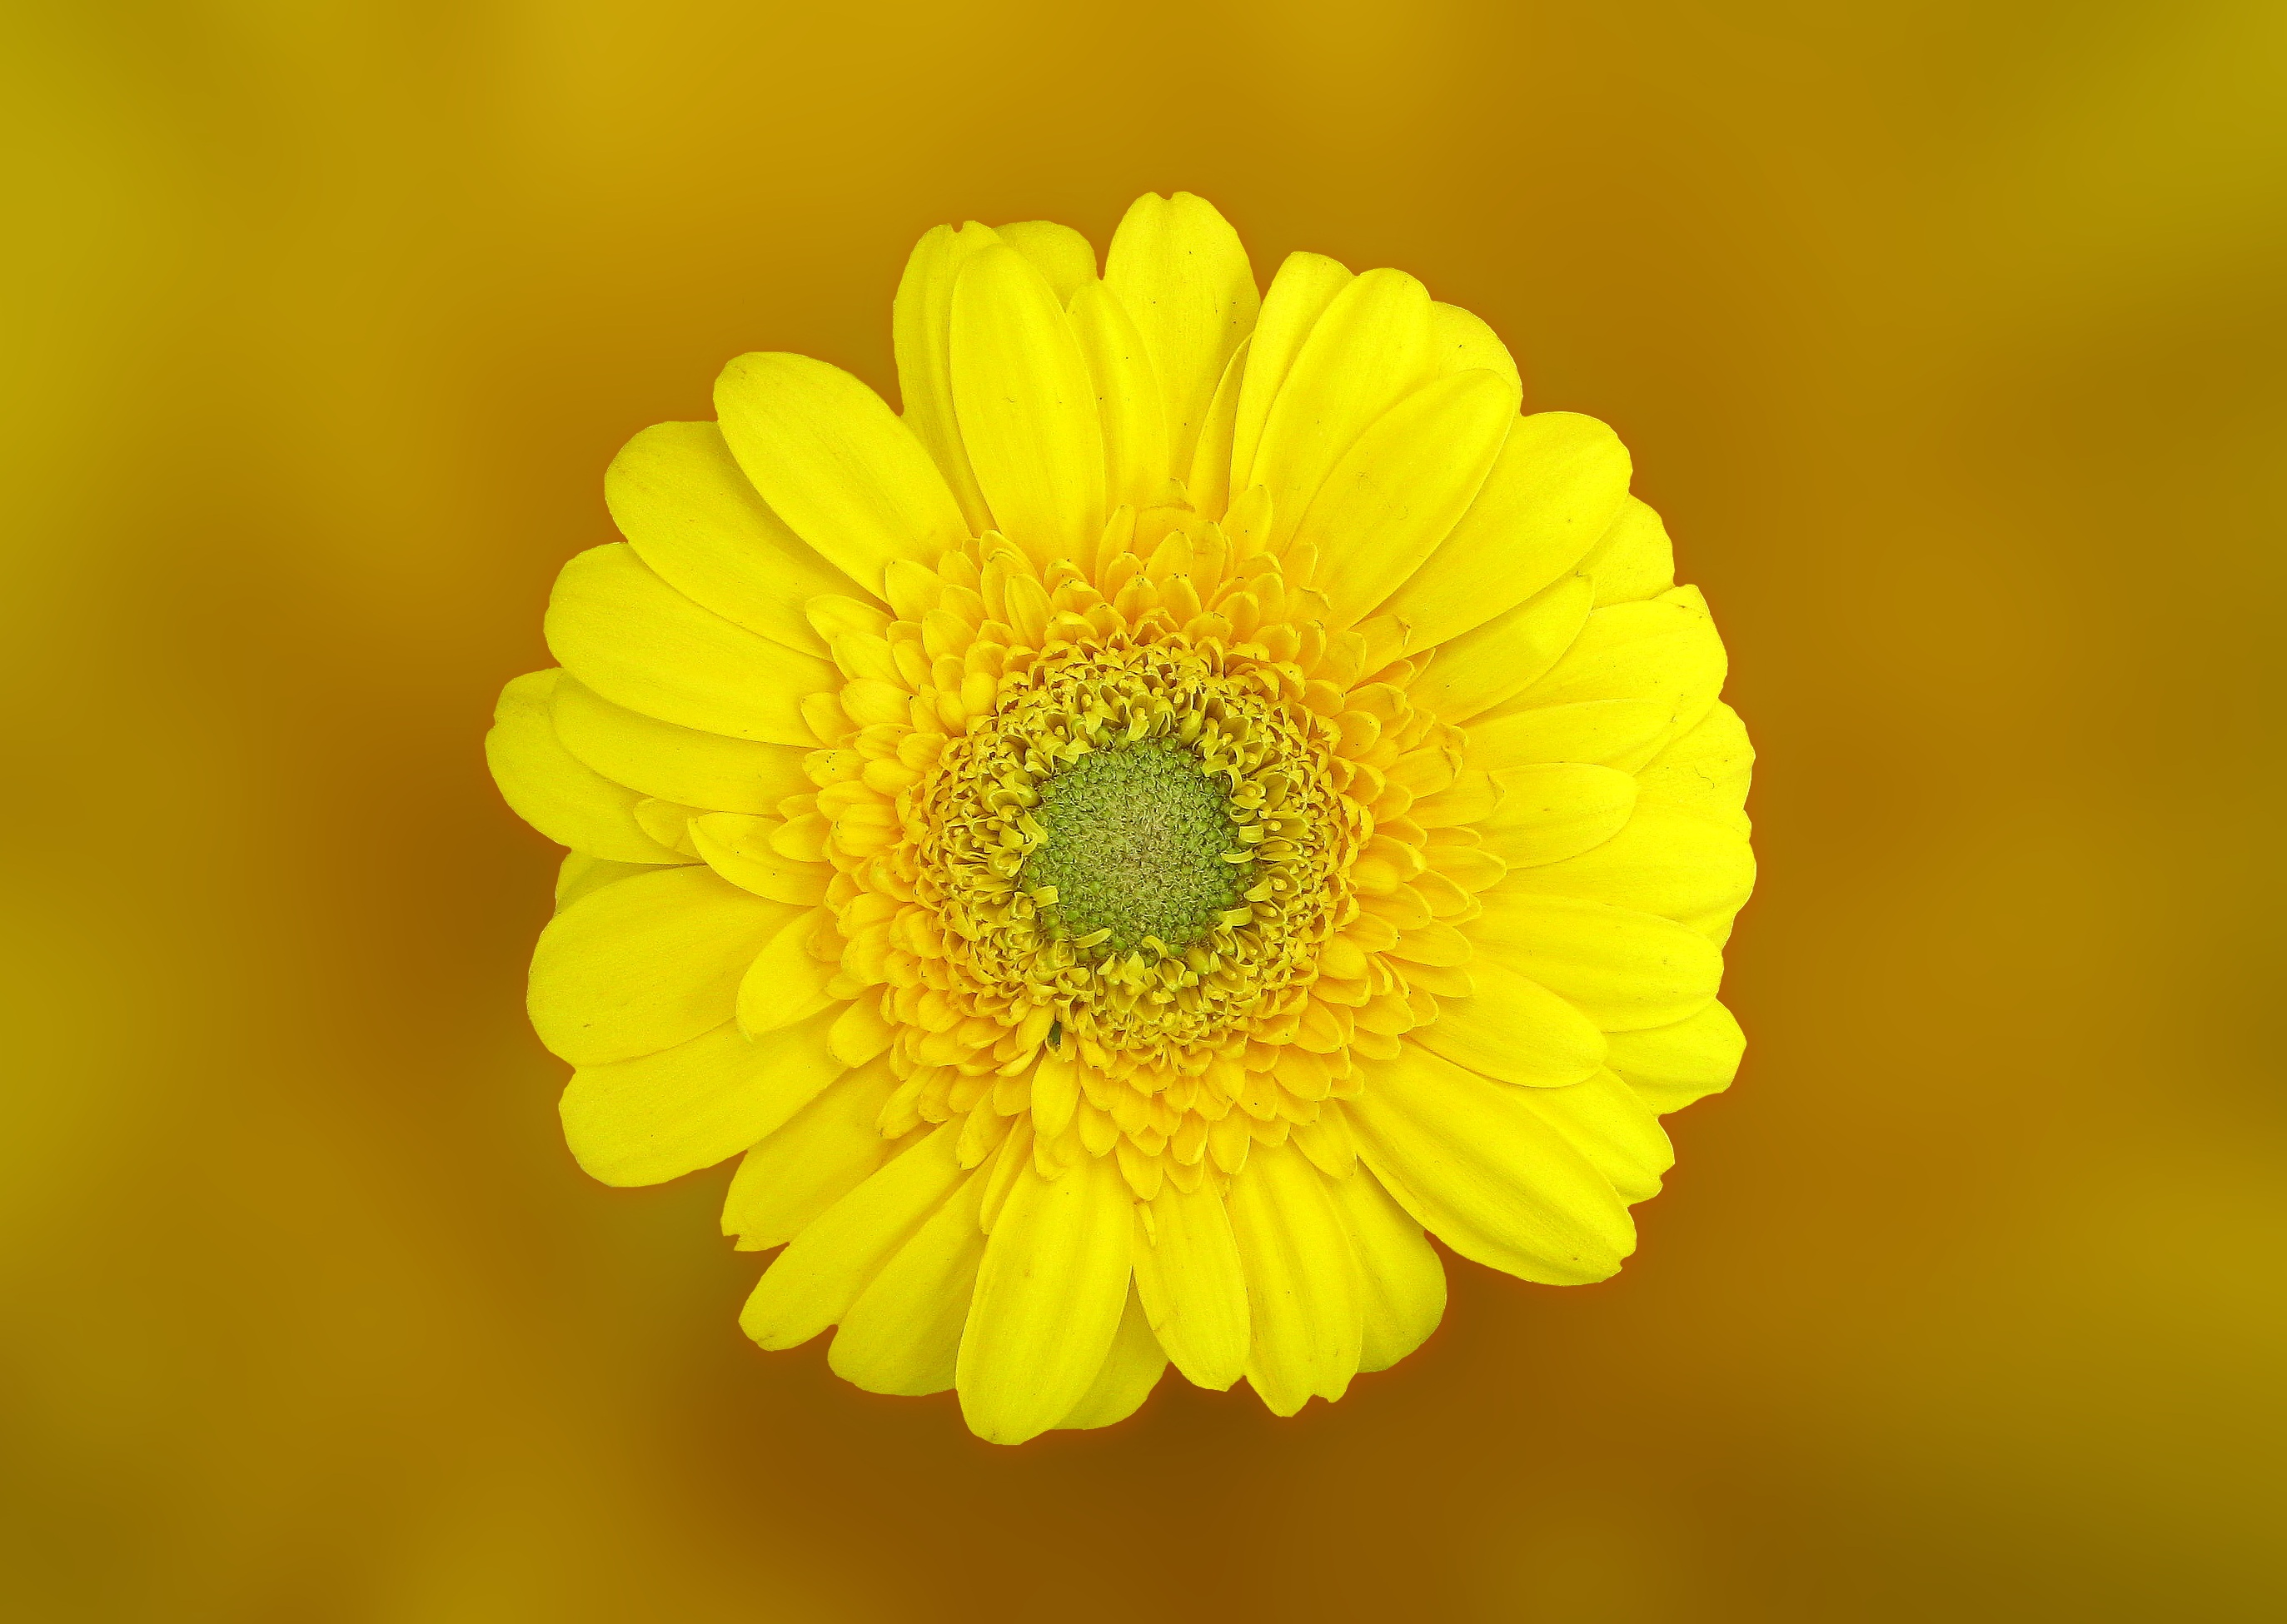 Image of a yellow flower